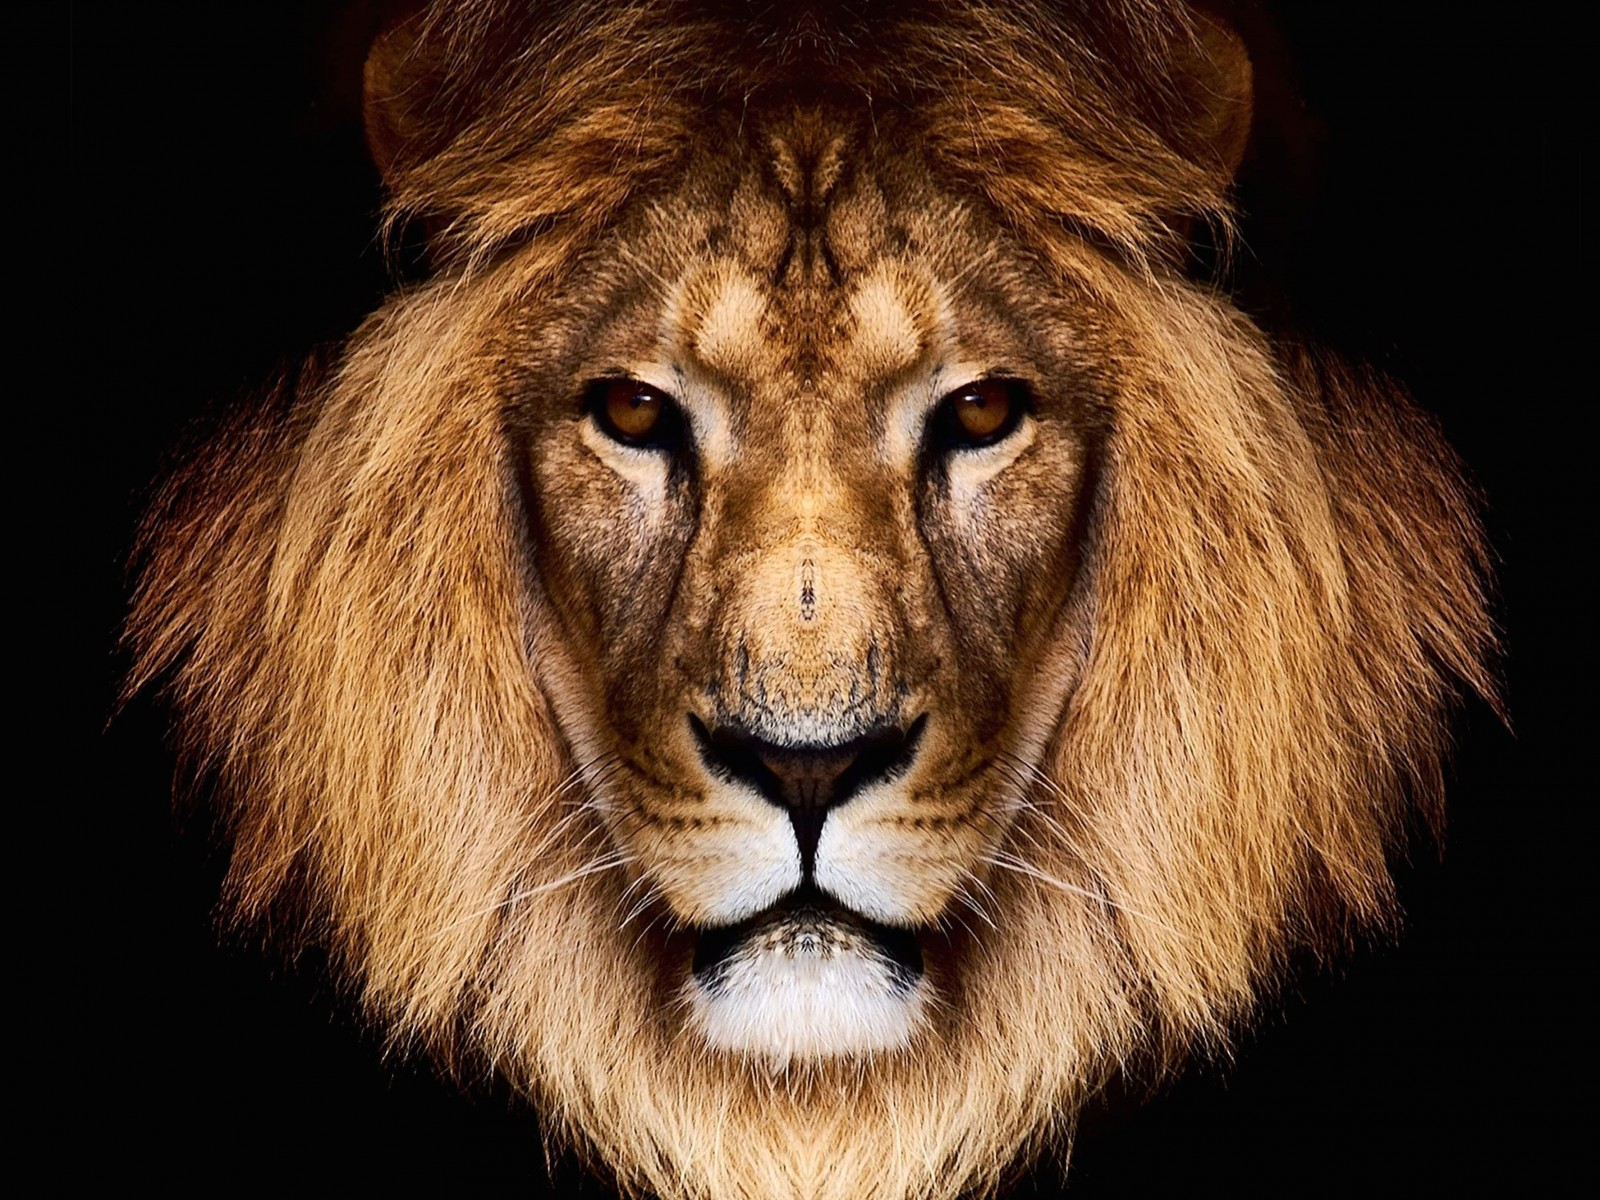 King Lion Wallpaper for Desktop 1600x1200